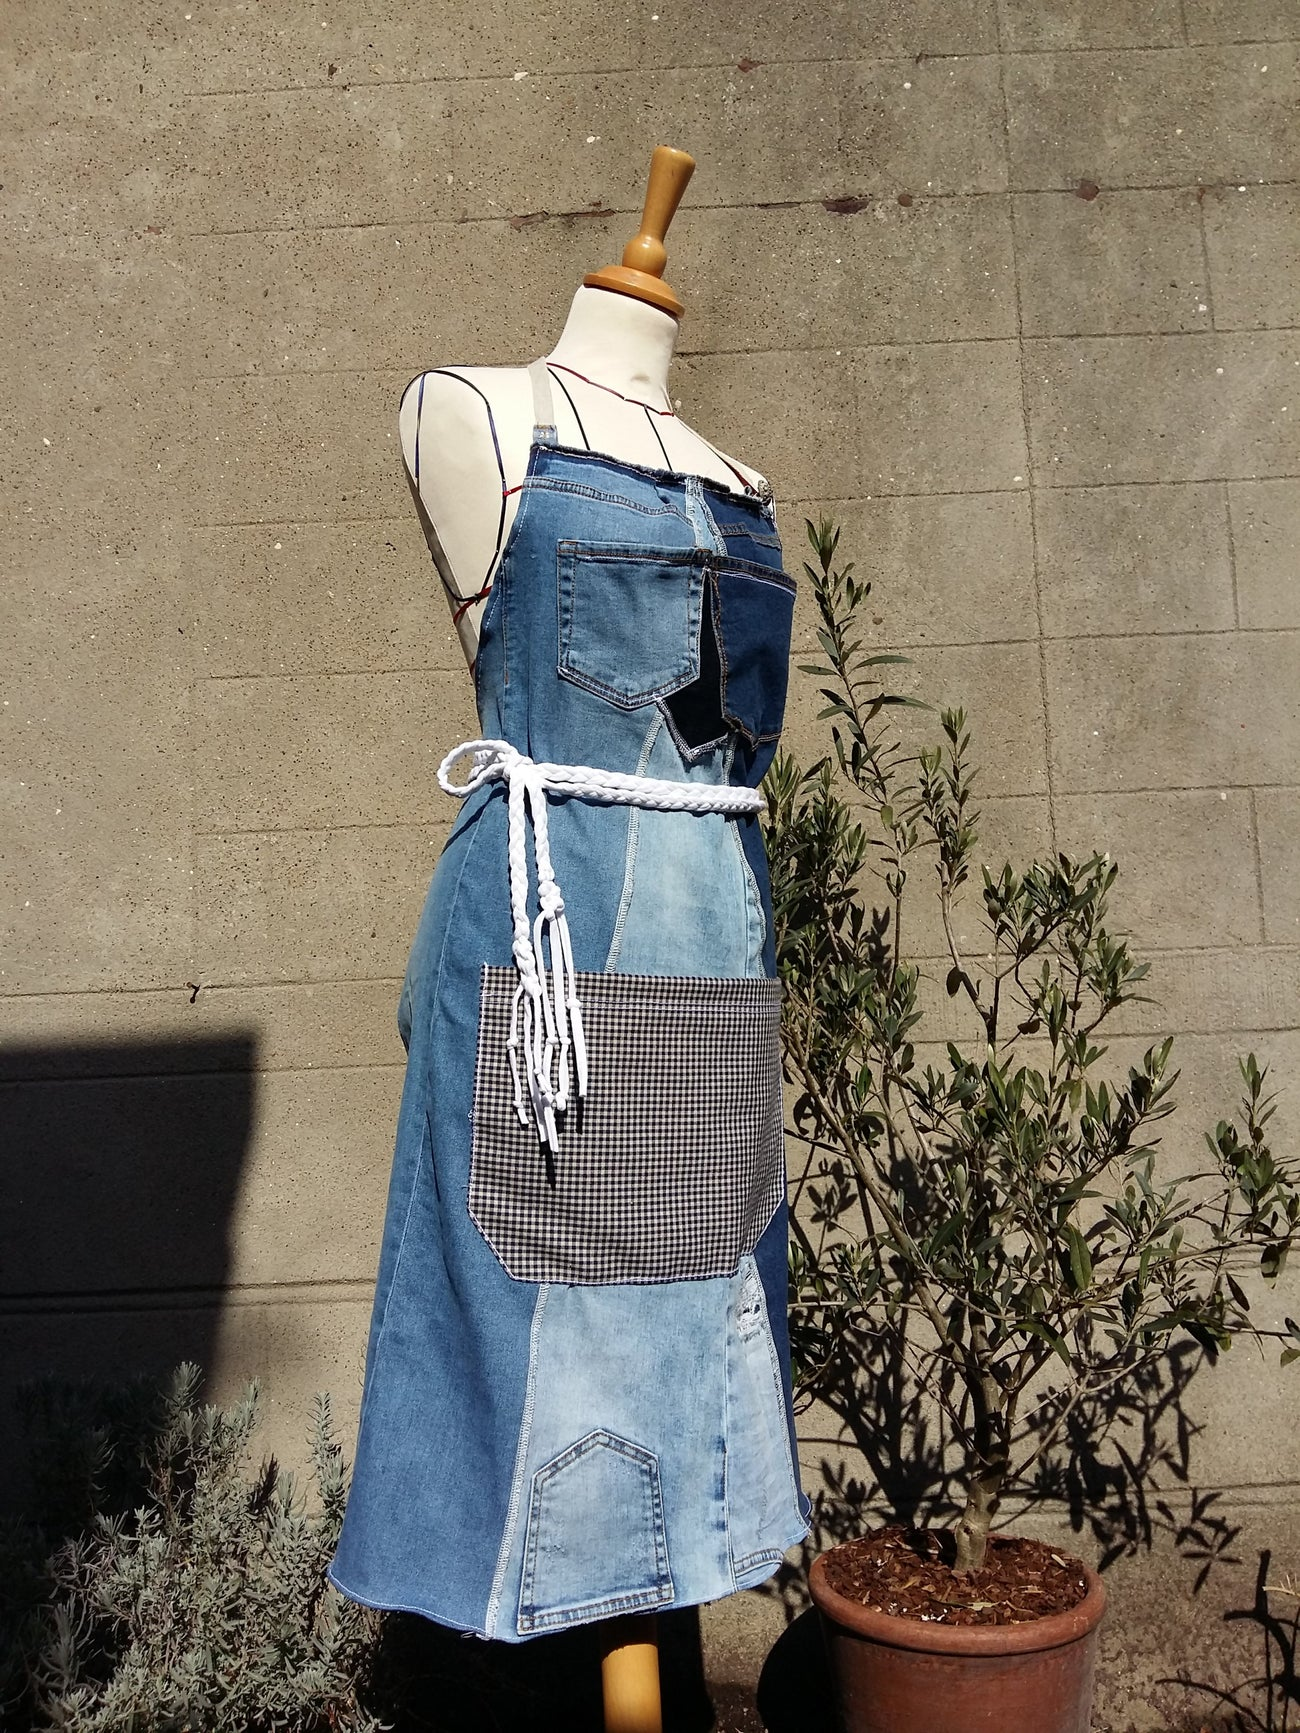 atelier couture initiation cours machine coudre lille tourcoing zero dechet RECYCLAGE JEANS tablier